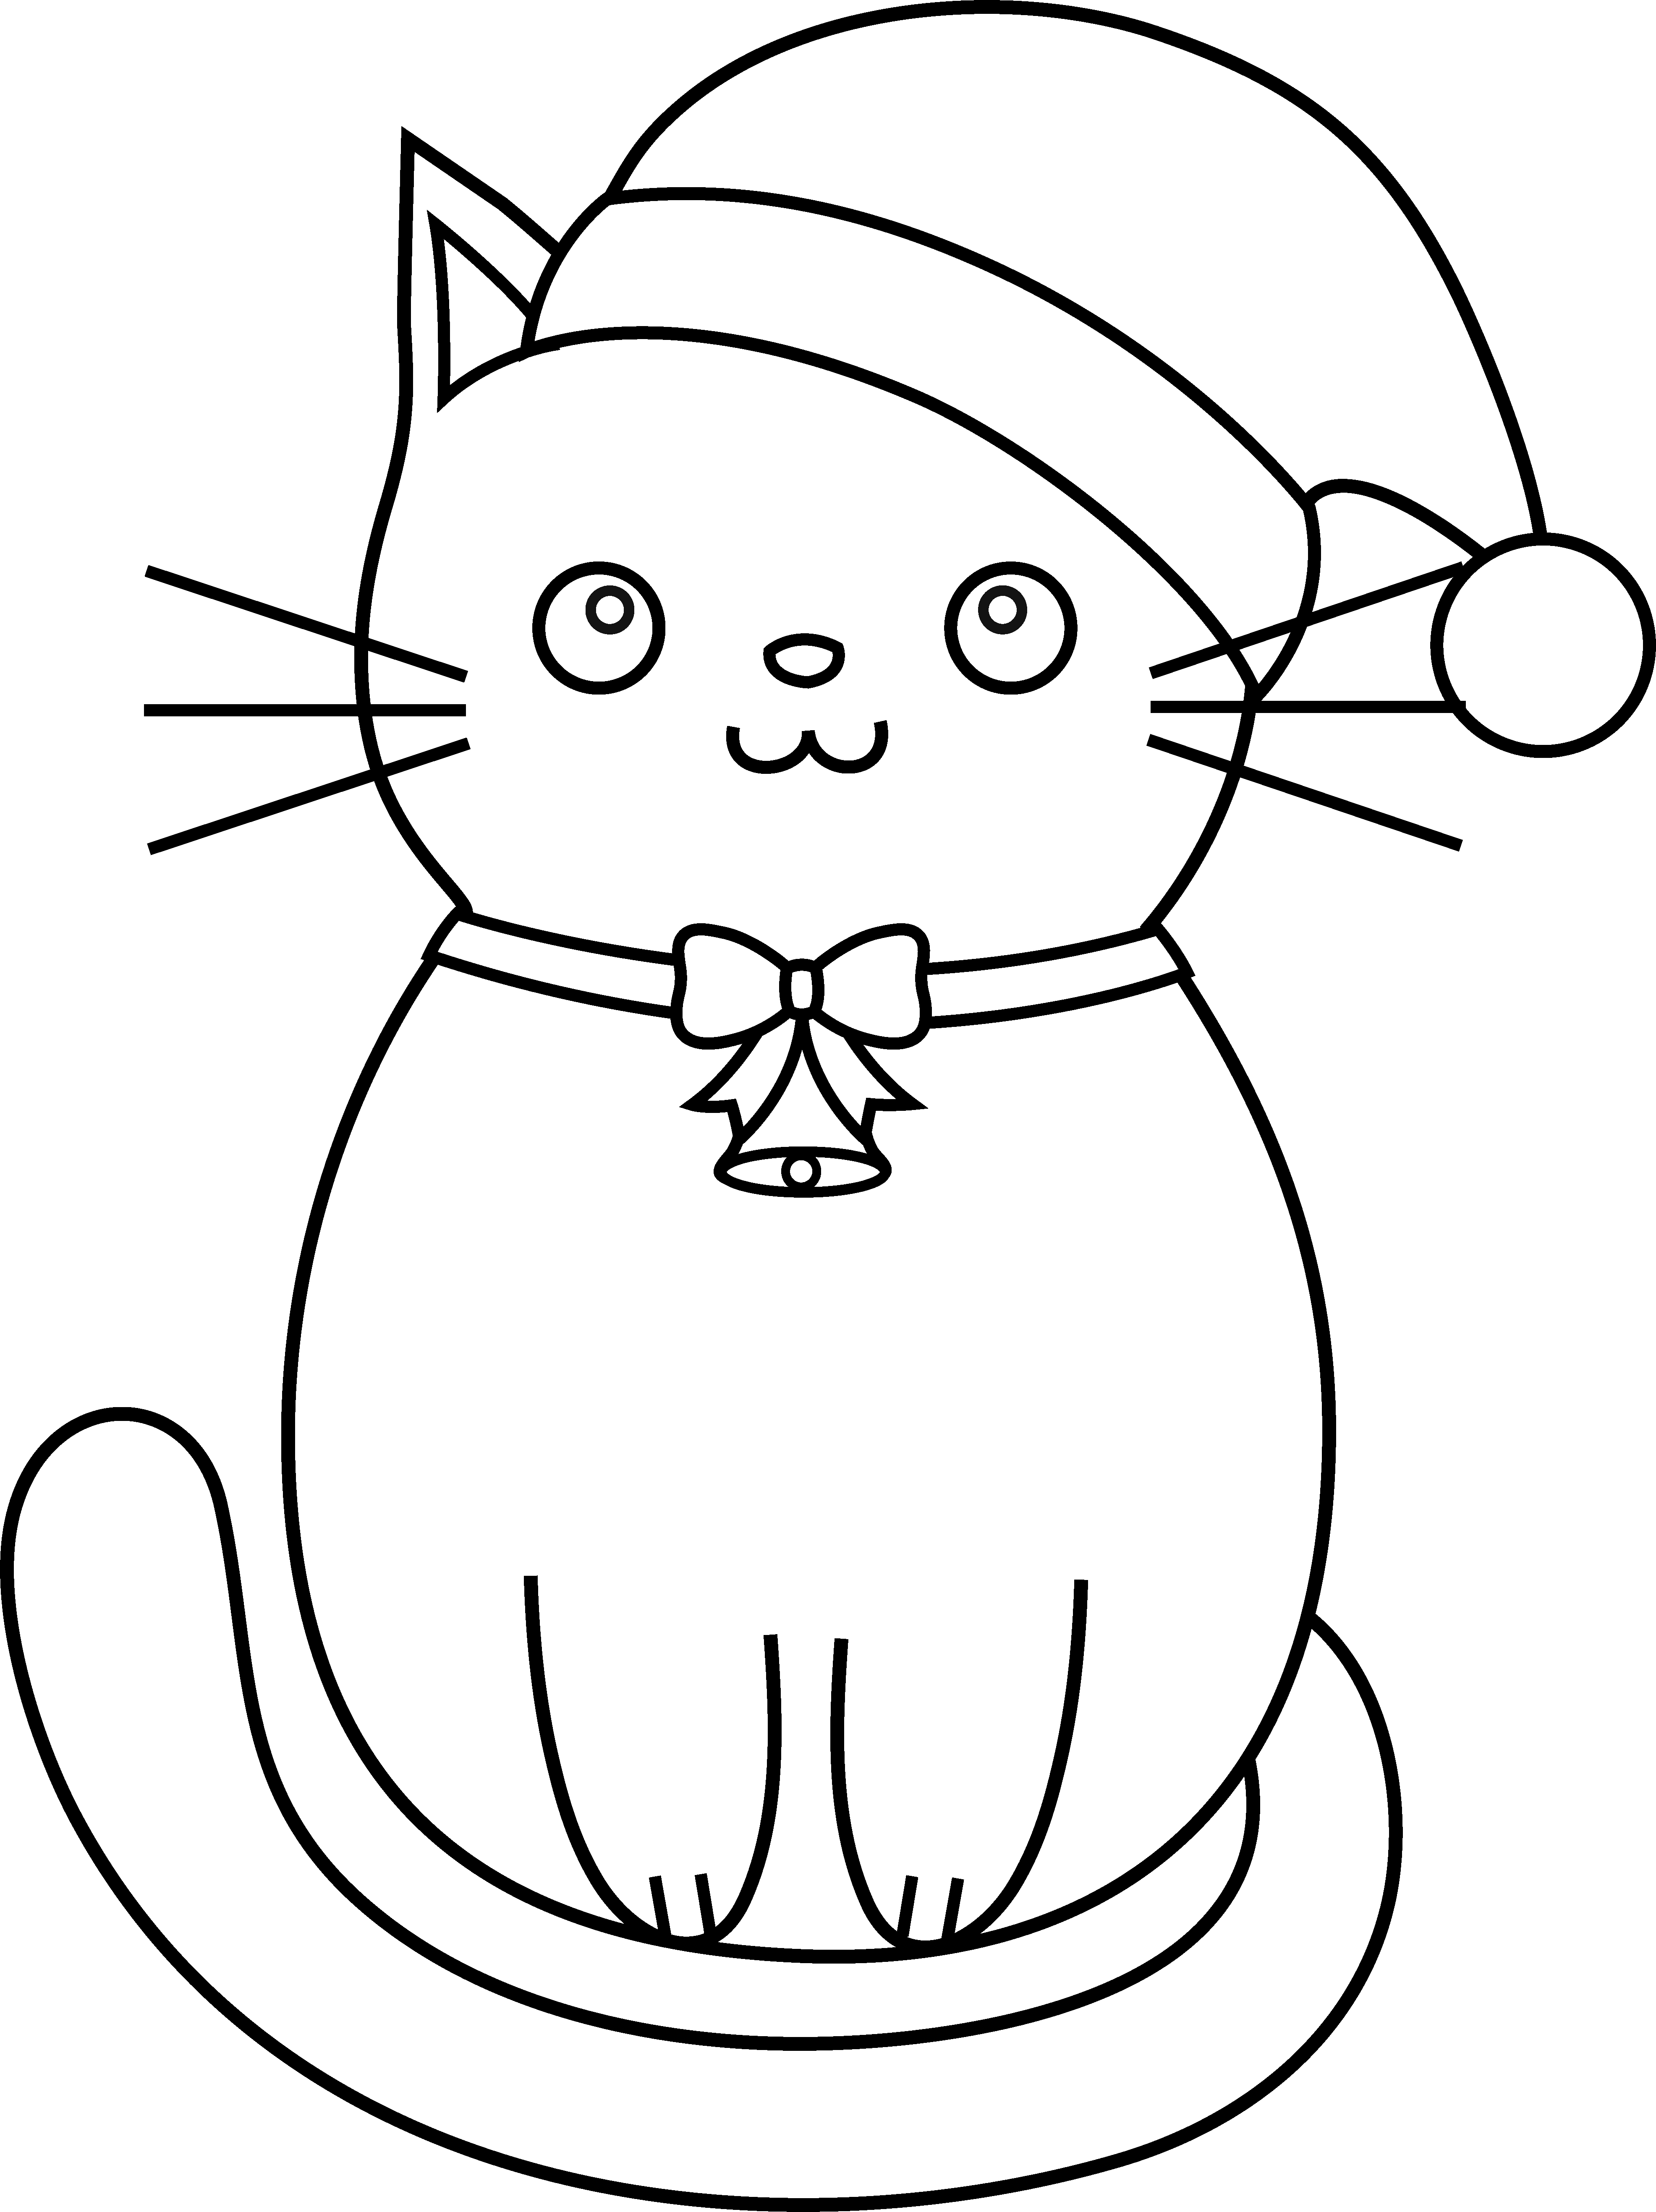 coloring pages kitten kitten coloring pages best coloring pages for kids kitten coloring pages